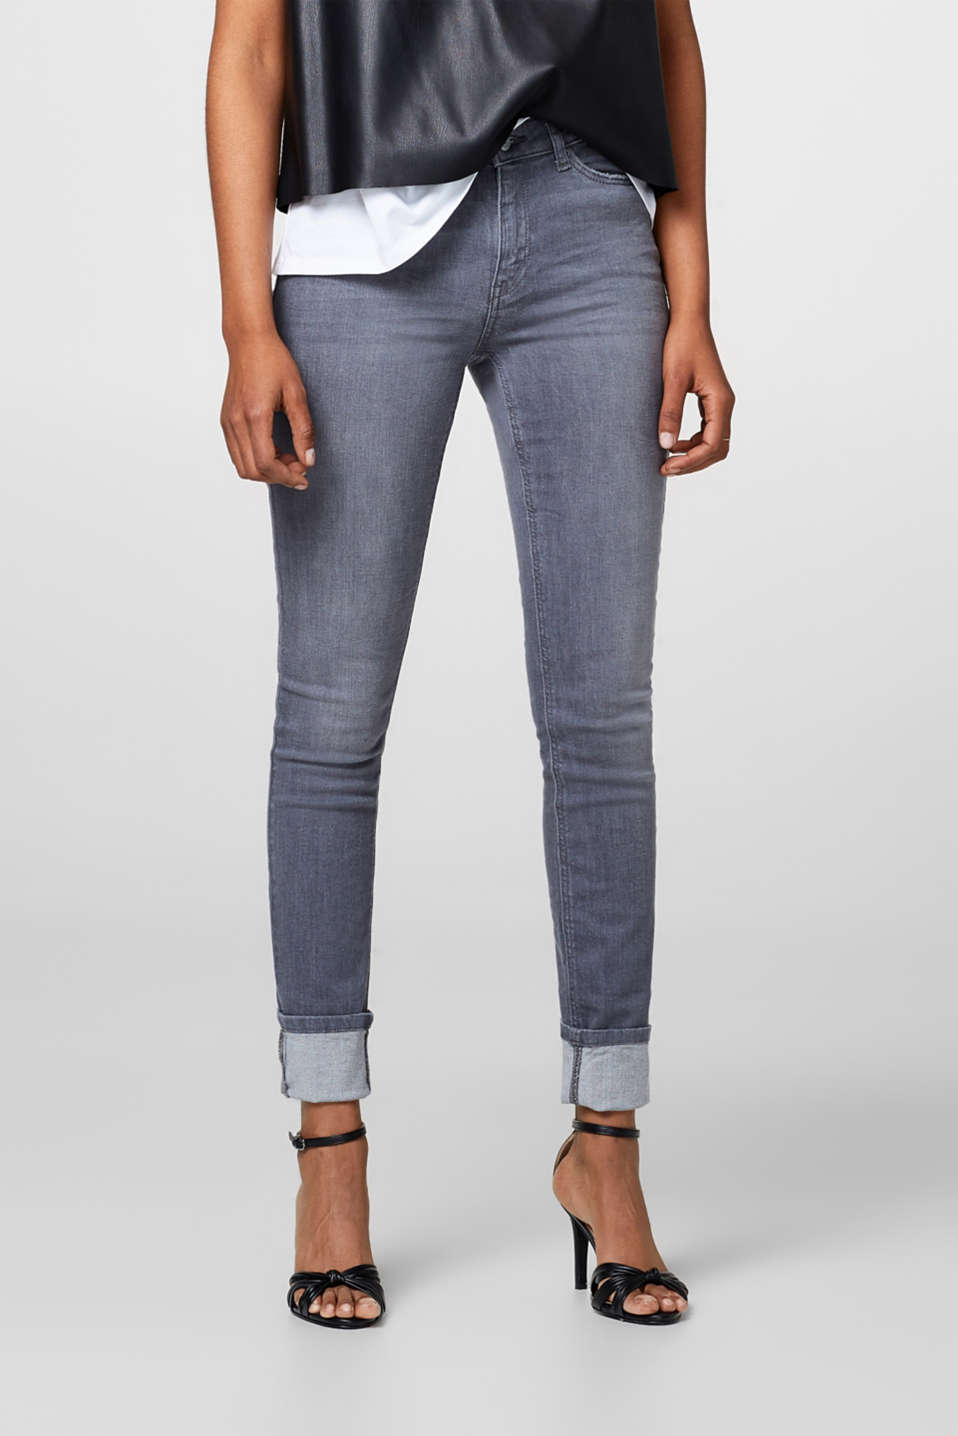 Esprit - Grey stretch jeans with a high waistband